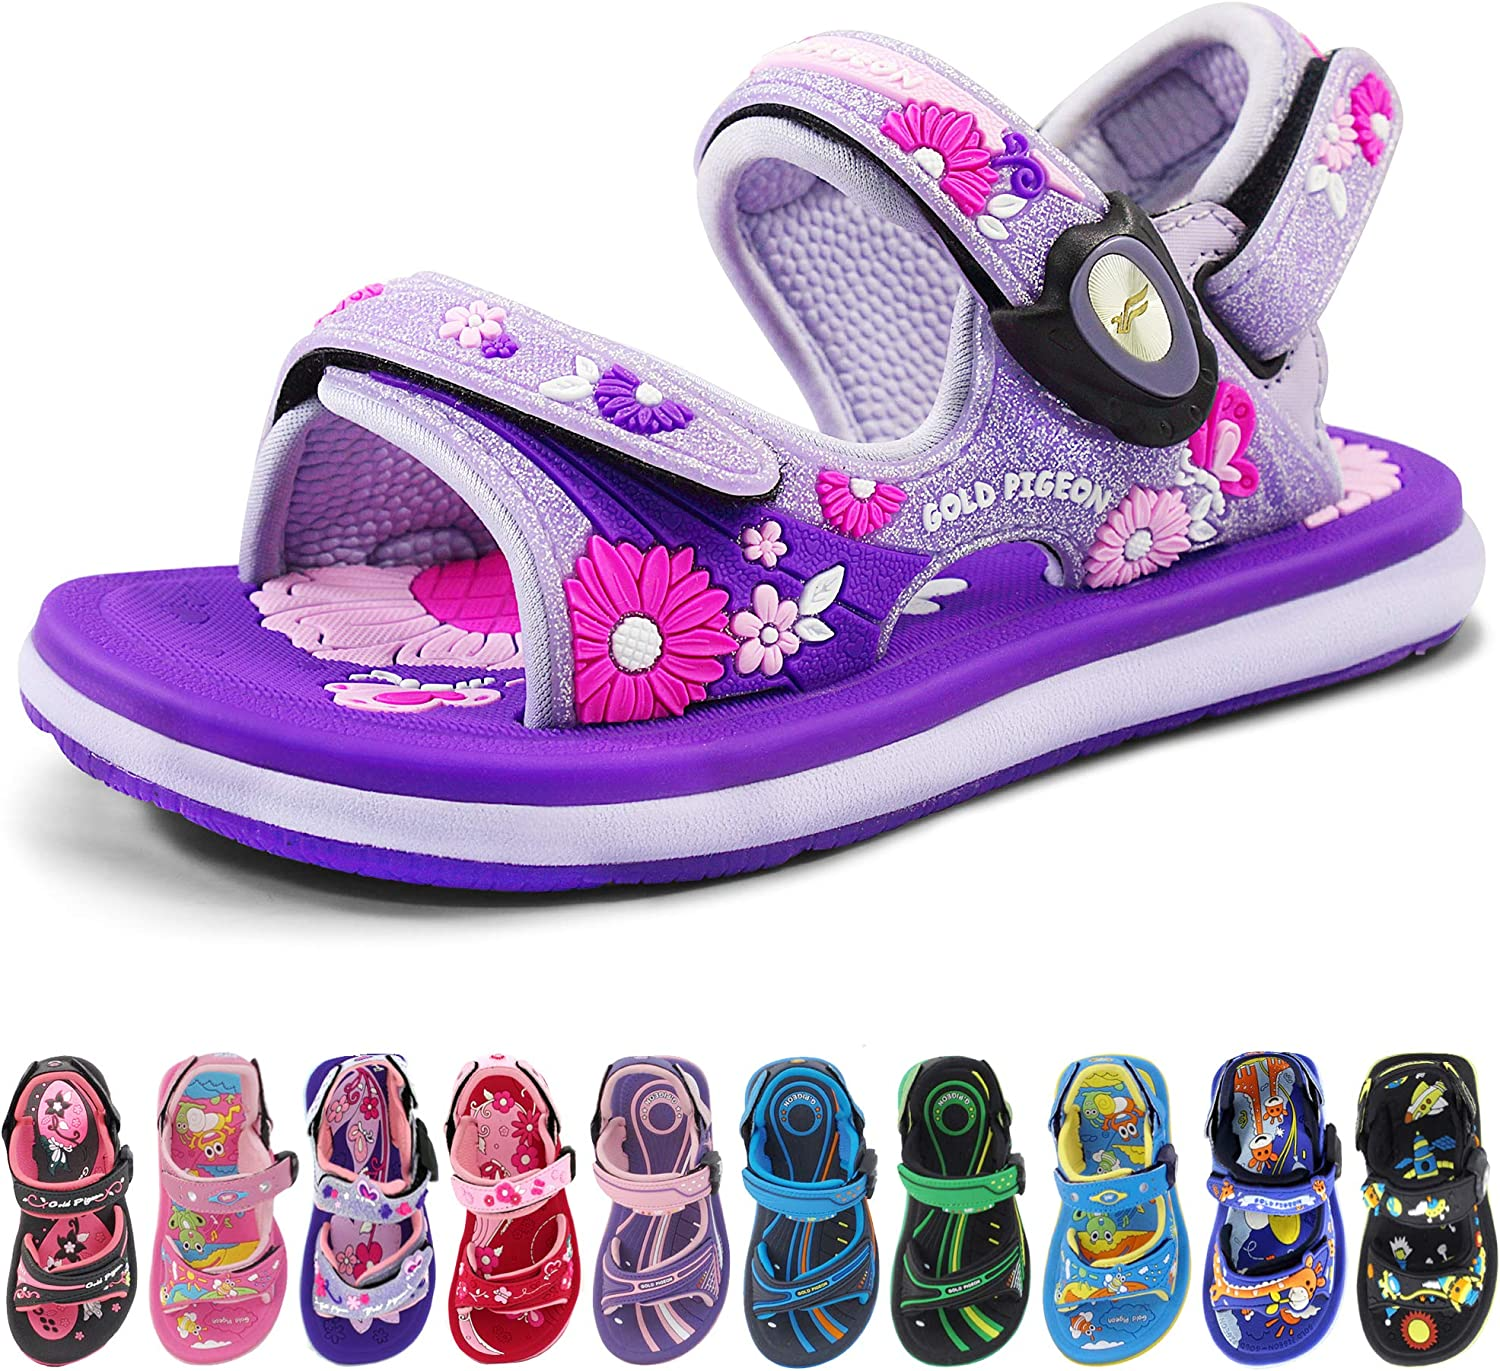 Manufacturer regenerated product Kids Classic Easy All stores are sold SNAP LOCK Slides with Sandals Str Adjustable